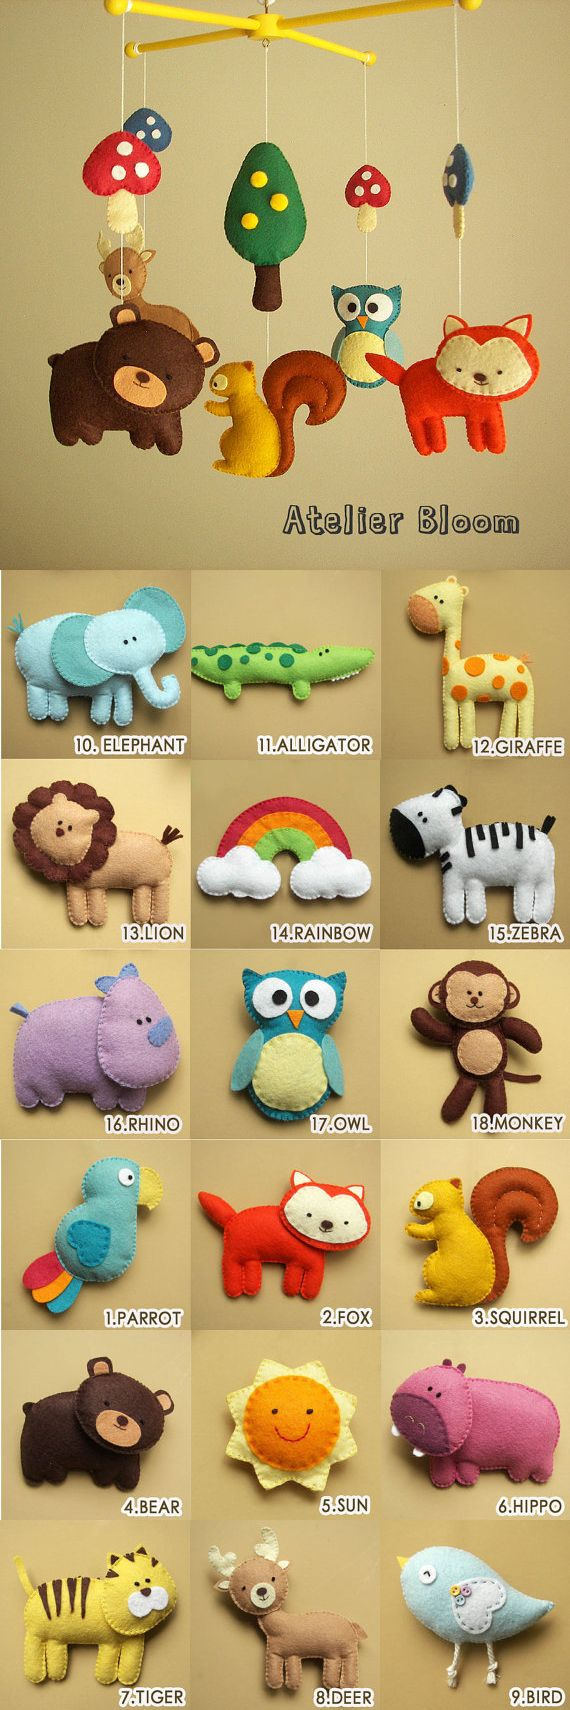 Felt Animal Inspiration, pdf pattern download seems iffy... These look like your blanket critters! @toni Hansen